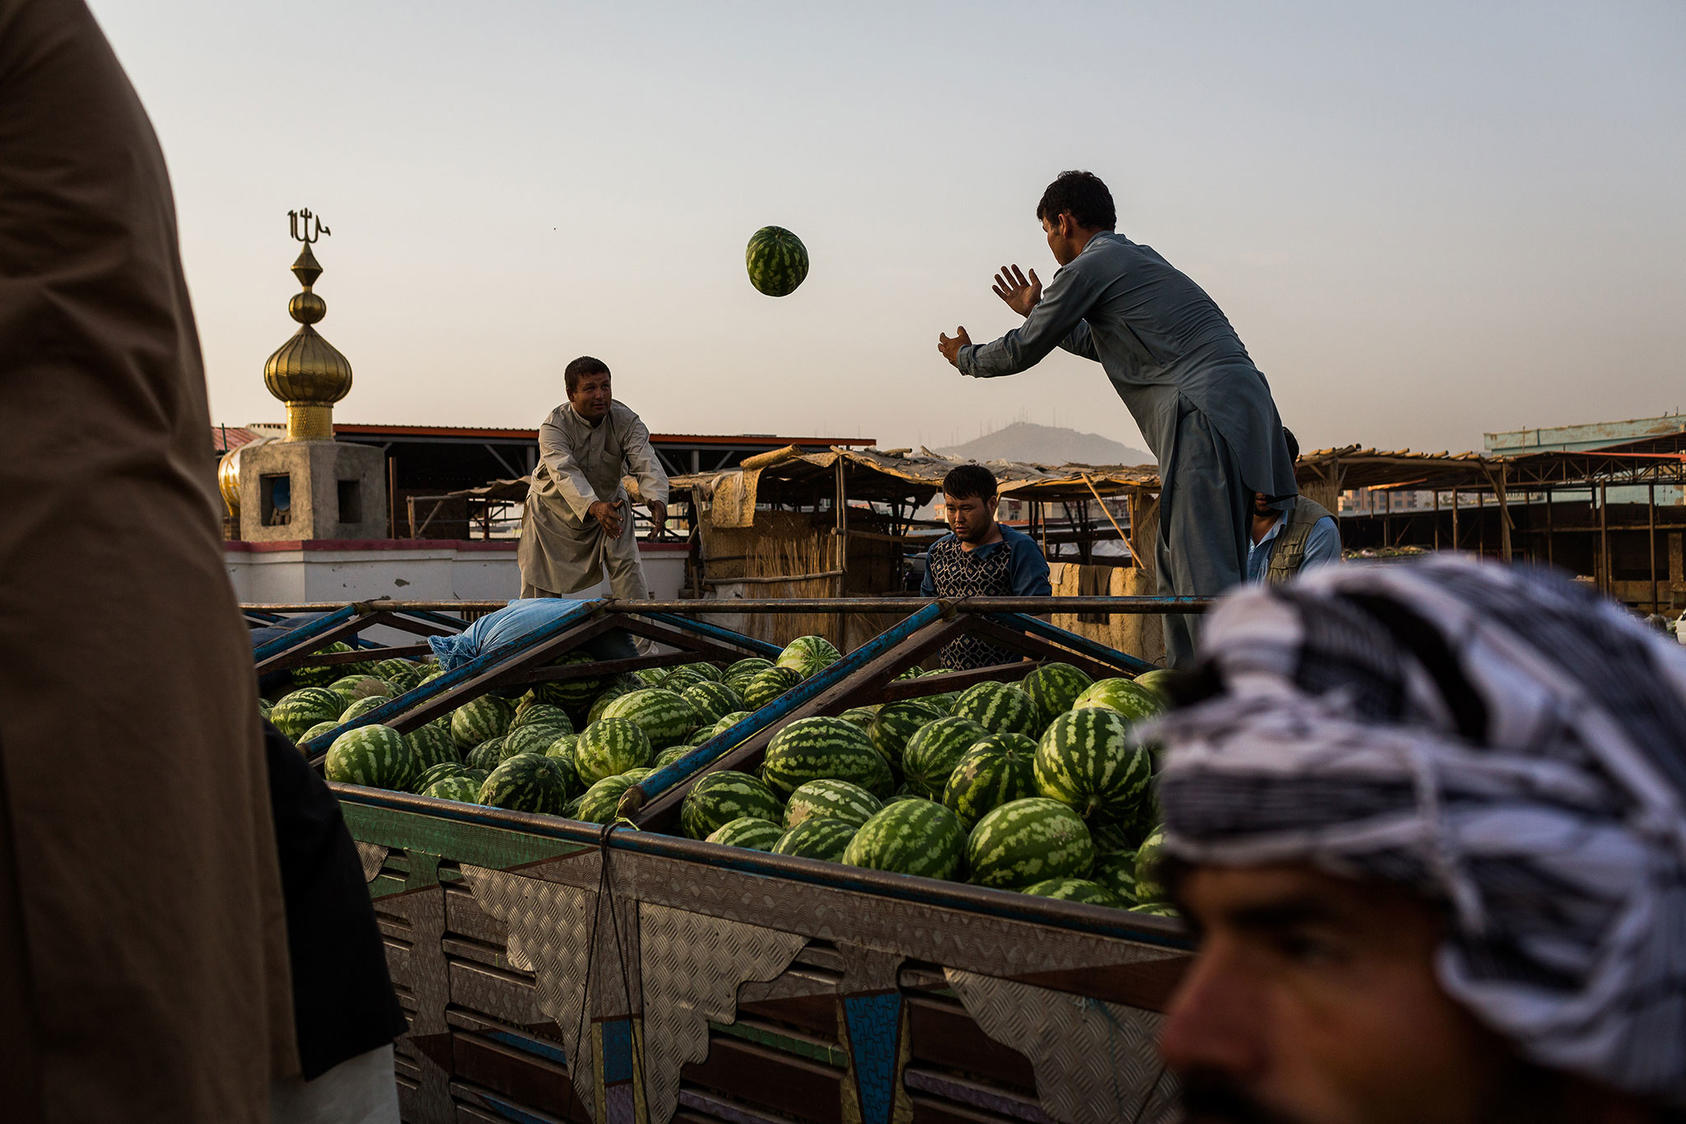 Farmers unload melons at the melon market in Kabul, Aug. 8, 2017. As bountiful as the fruit is this season, the Taliban and militias defending the government against it have taken a toll on farmers and traders. (Jim Huylebroek/The New York Times)